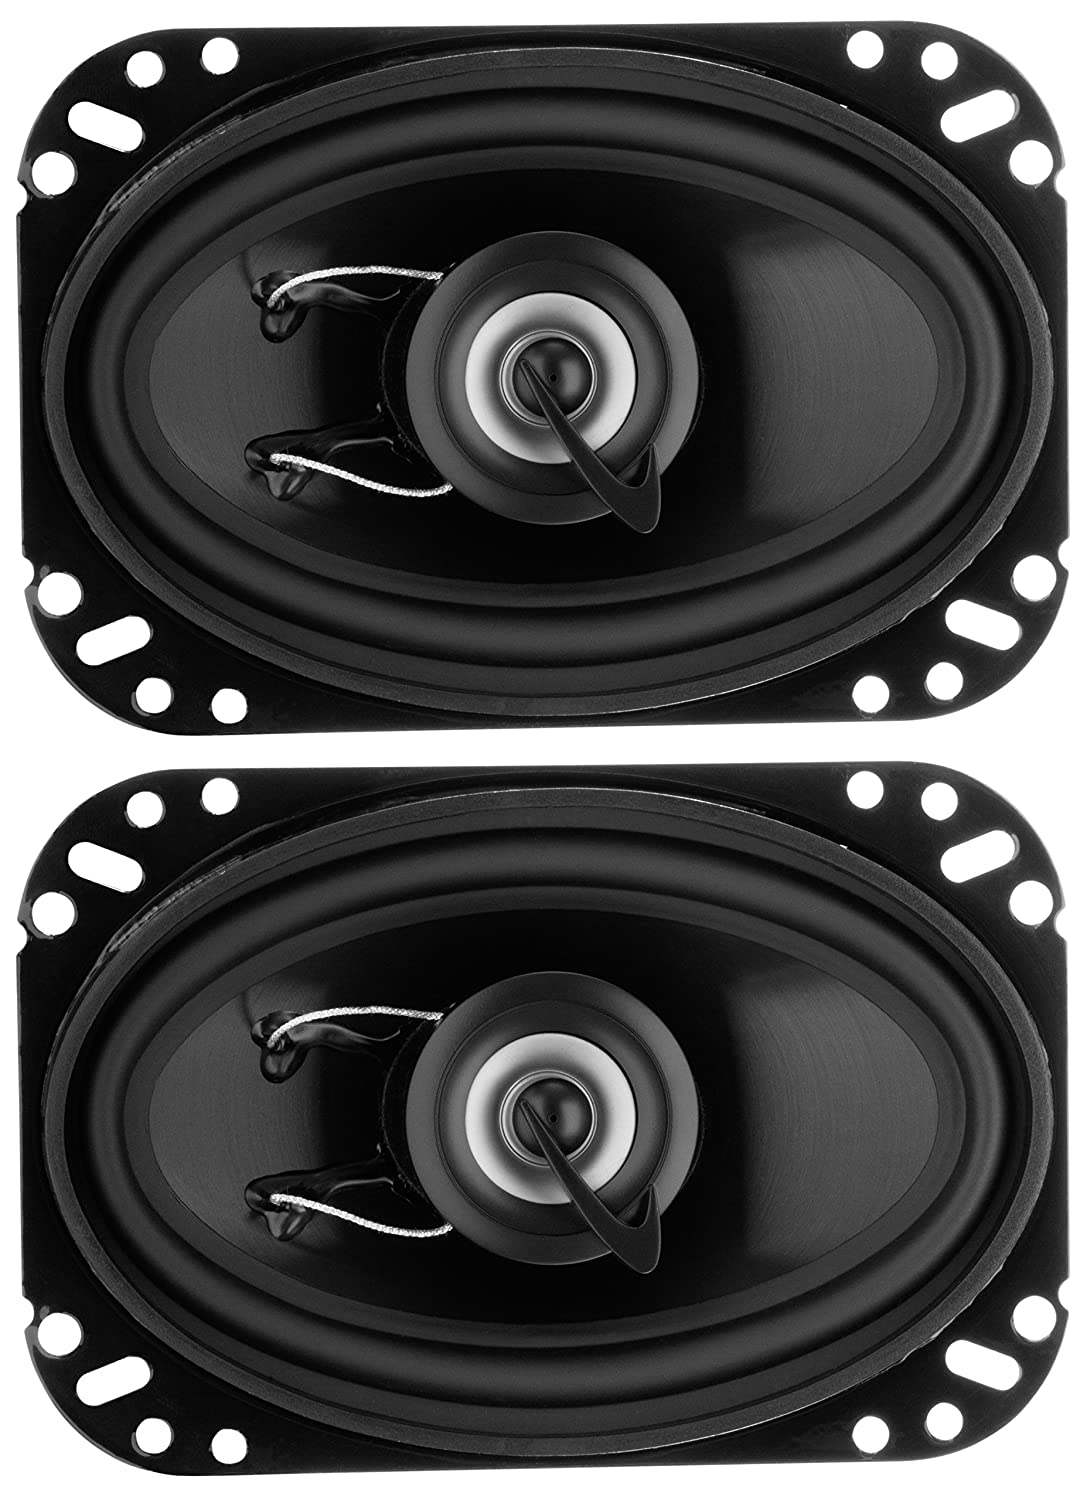 Planet Audio TRQ462 4 x 6 Inch Car Speakers - 200 Watts of Power Per Pair, 100 Watts Each